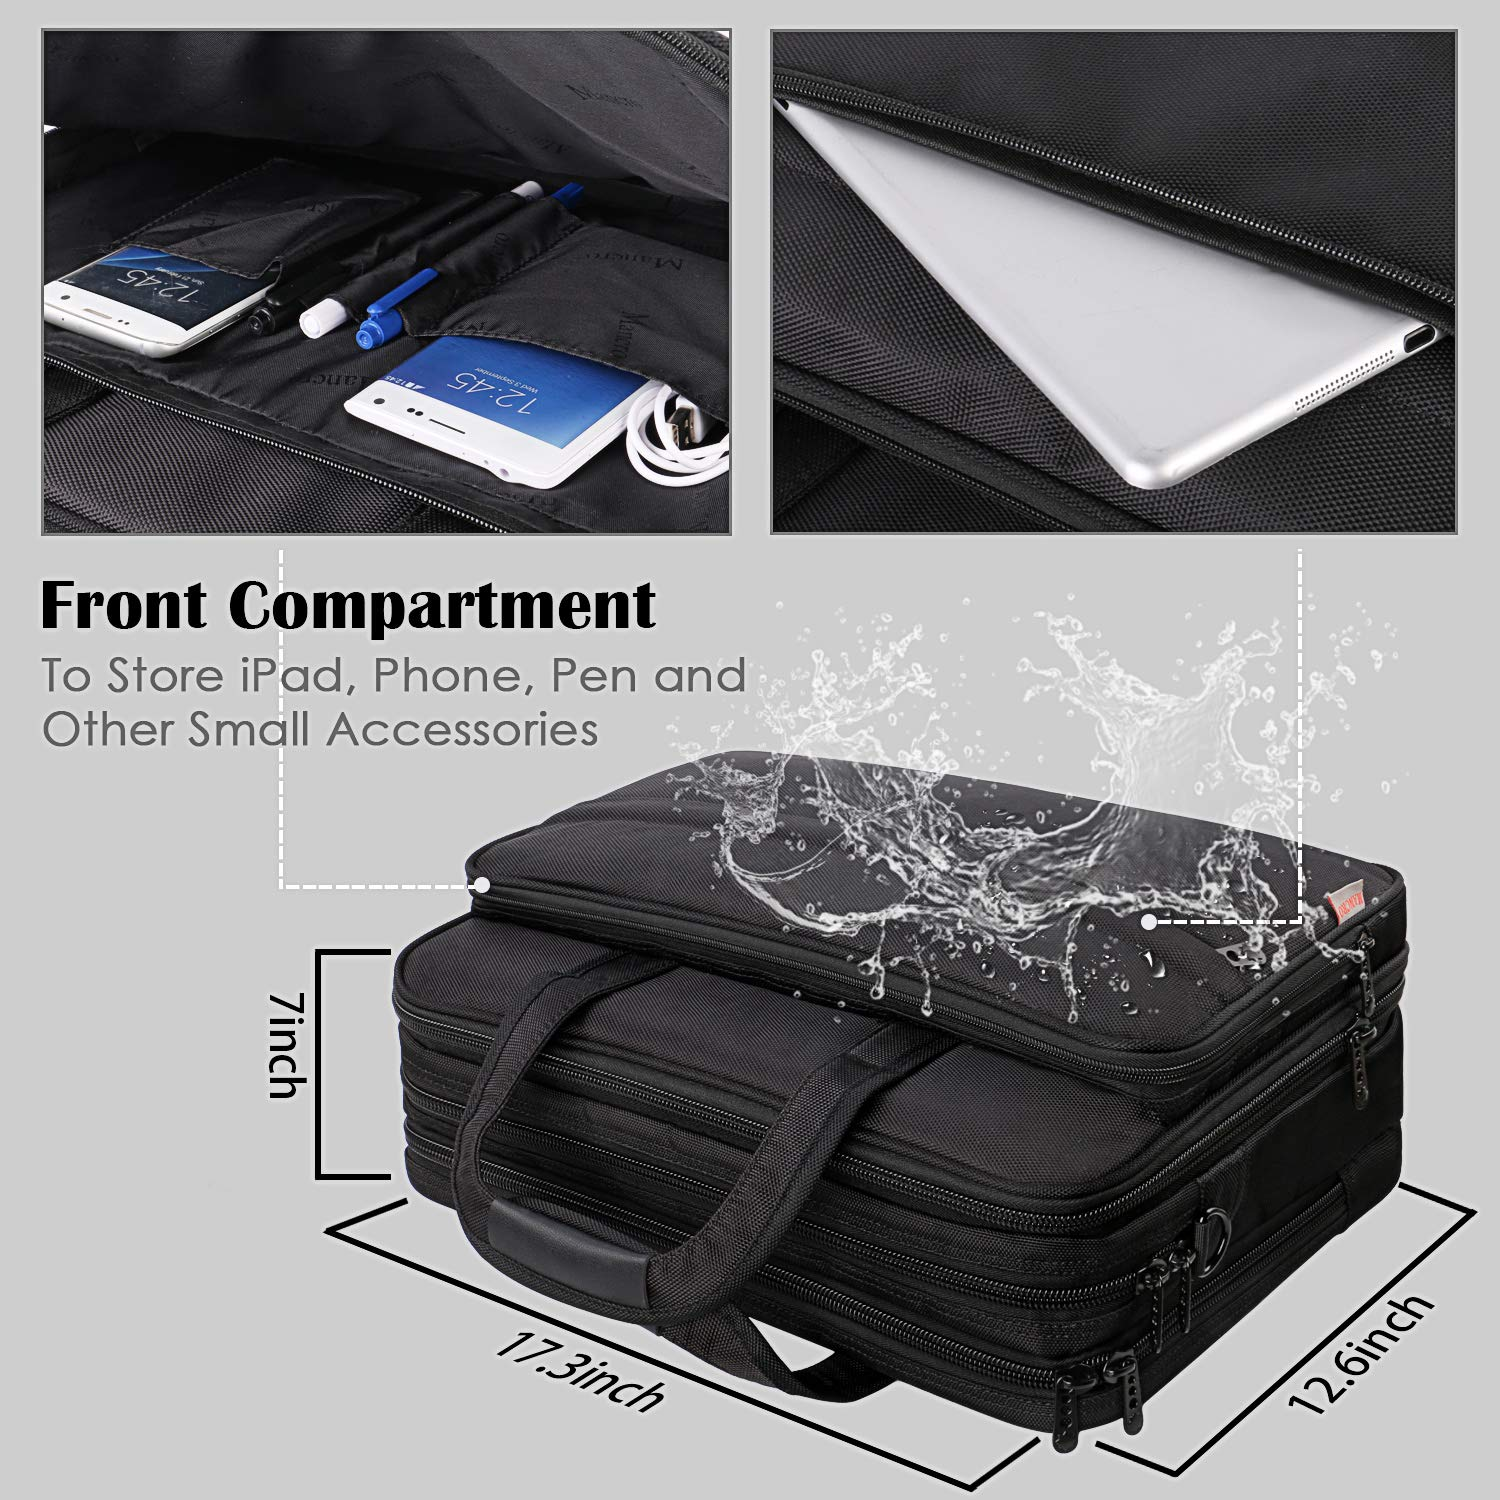 17 inch Laptop Bag, Large Business Briefcase for Men Women, Travel Laptop Case Shoulder Bag, Waterproof Carrying Case Fits 15.6 17 inch Laptop, Expandable Computer Bag for Notebook, Ultrabook by Mancro (Image #2)